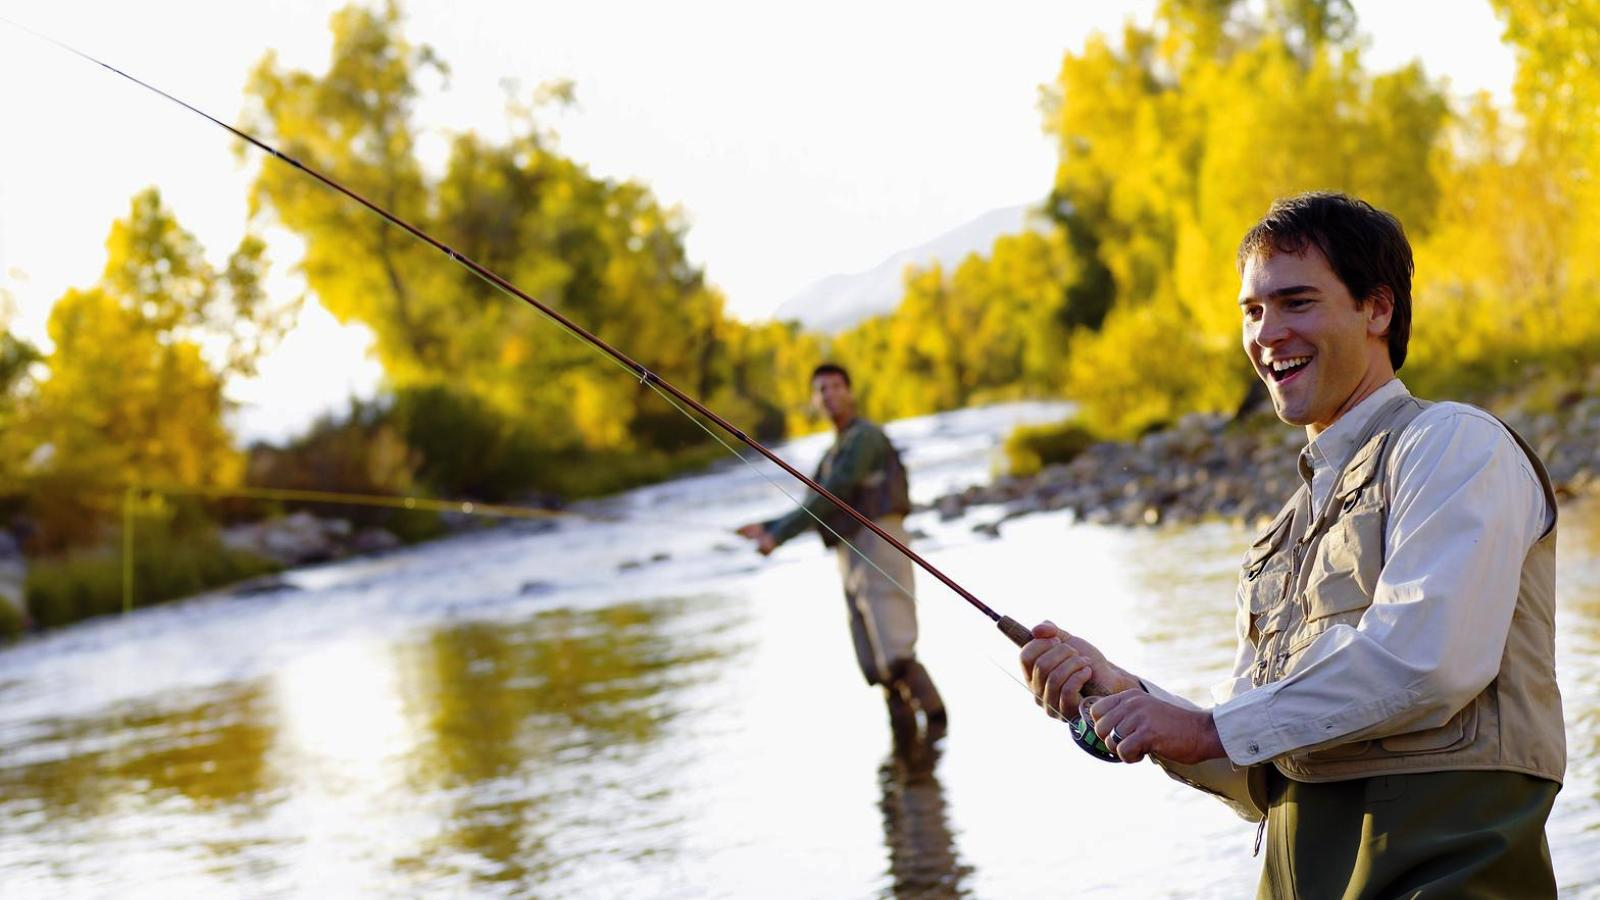 Sheraton Steamboat Resort Villas - Fly Fishing